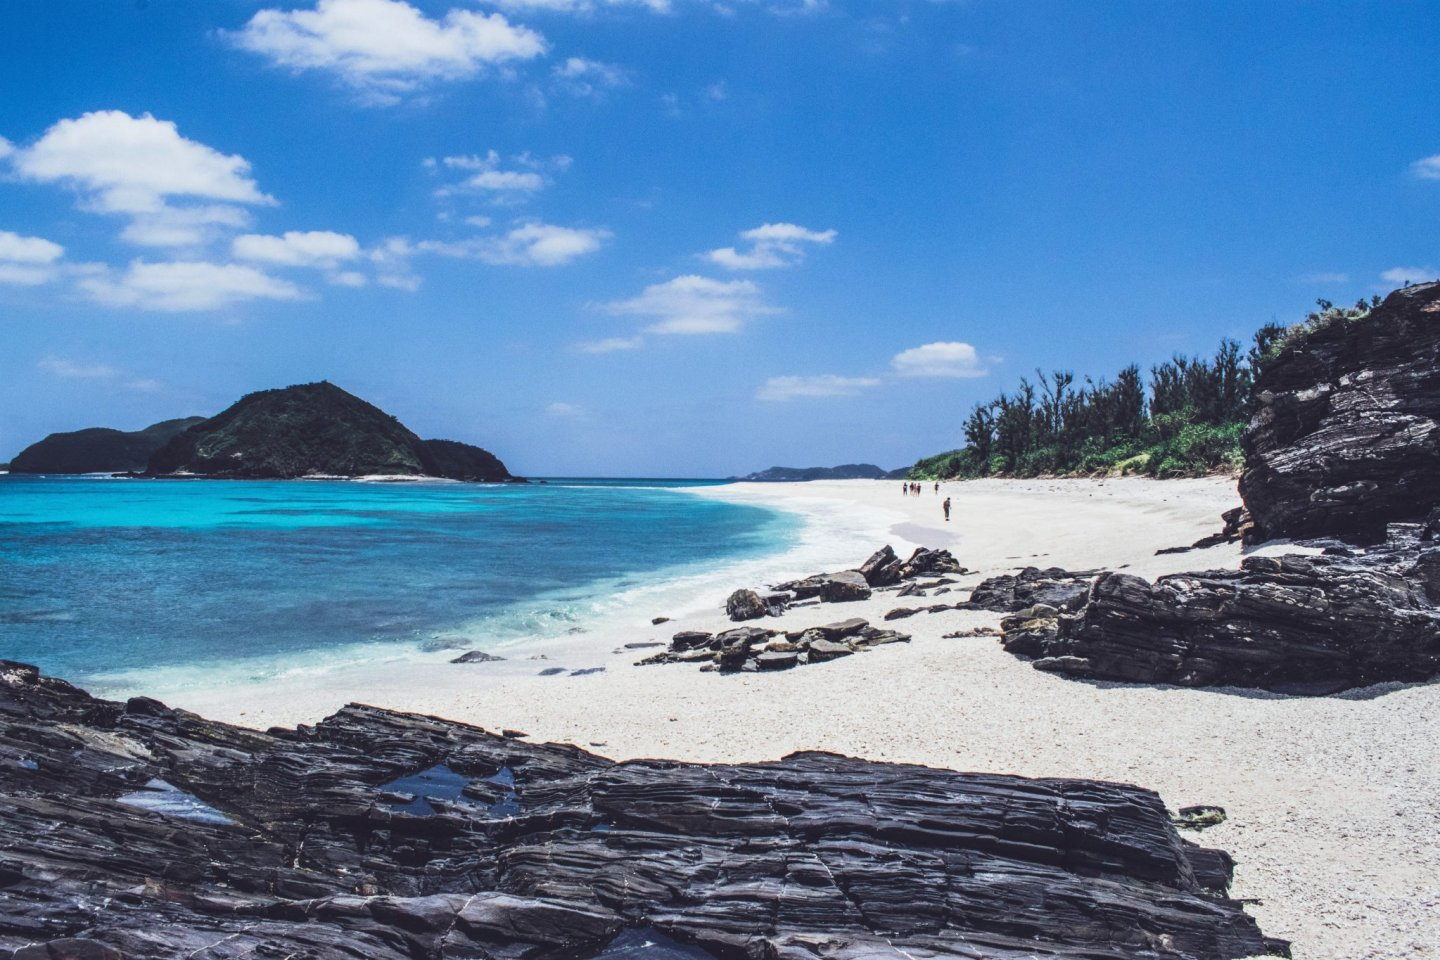 Southern Cross is located in the Kerama Islands, a short ferry ride from Naha